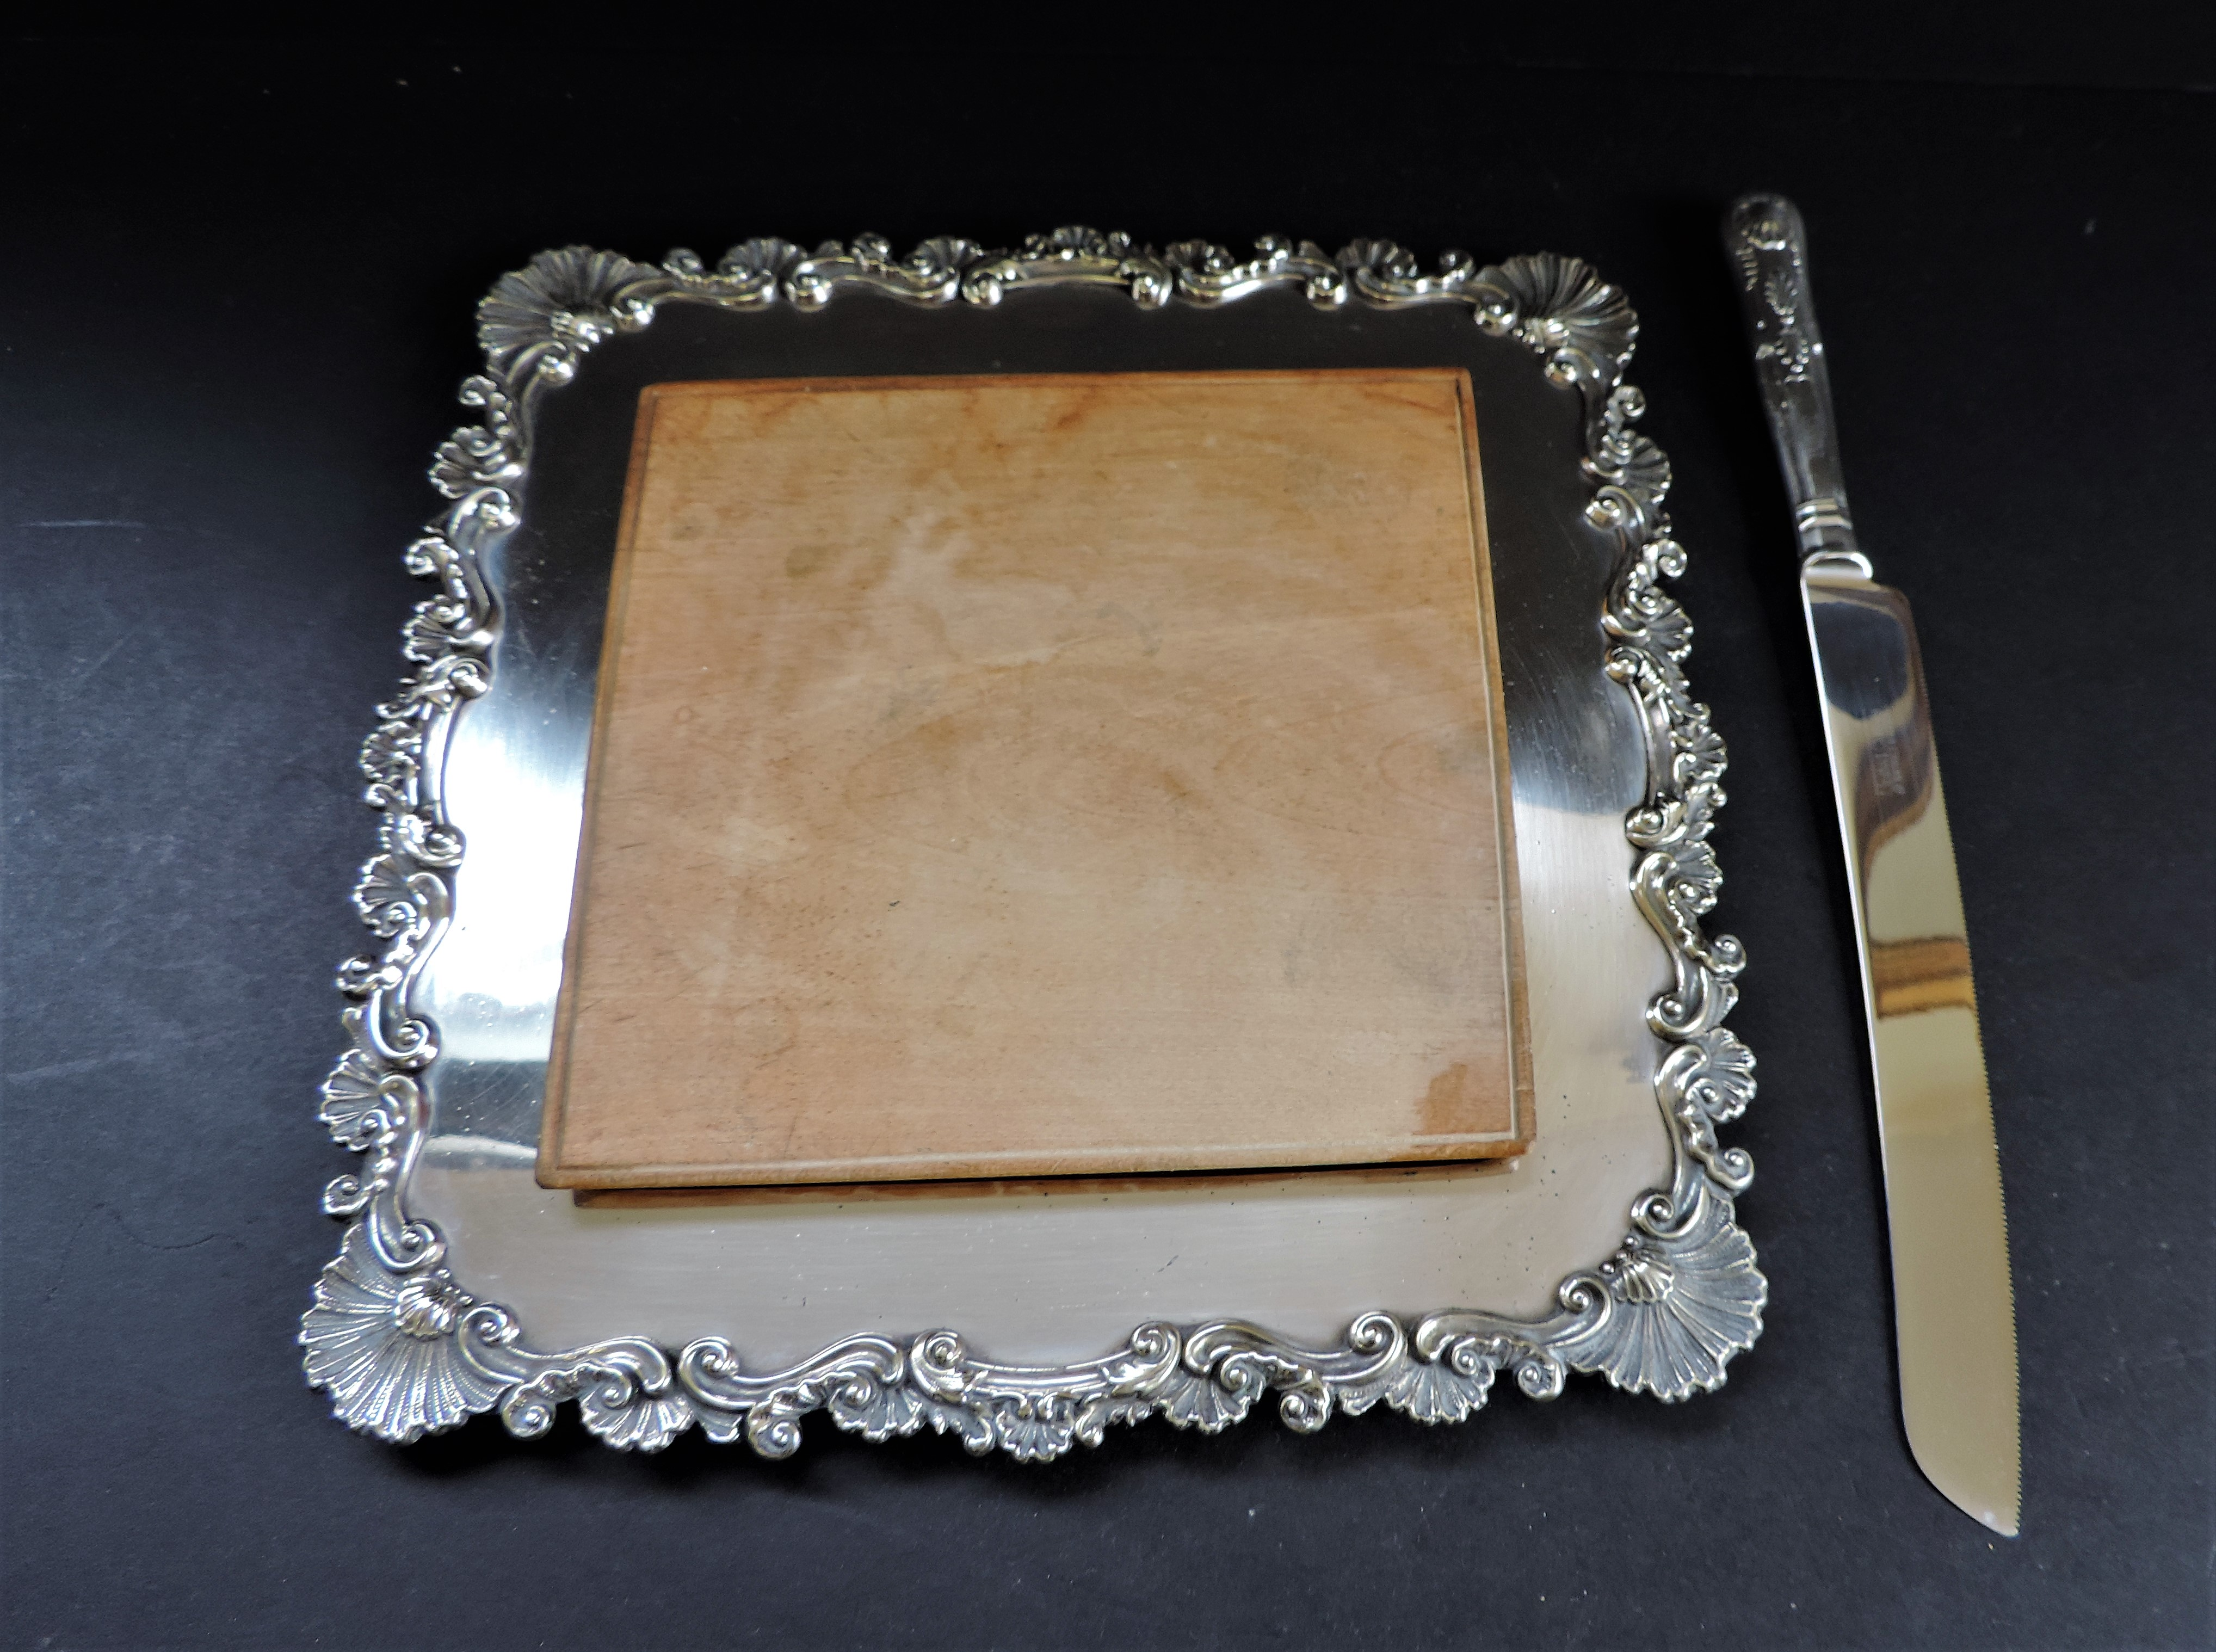 Antique Victorian Silver Plated Bread/Cheese Board Serving Set - Image 2 of 6